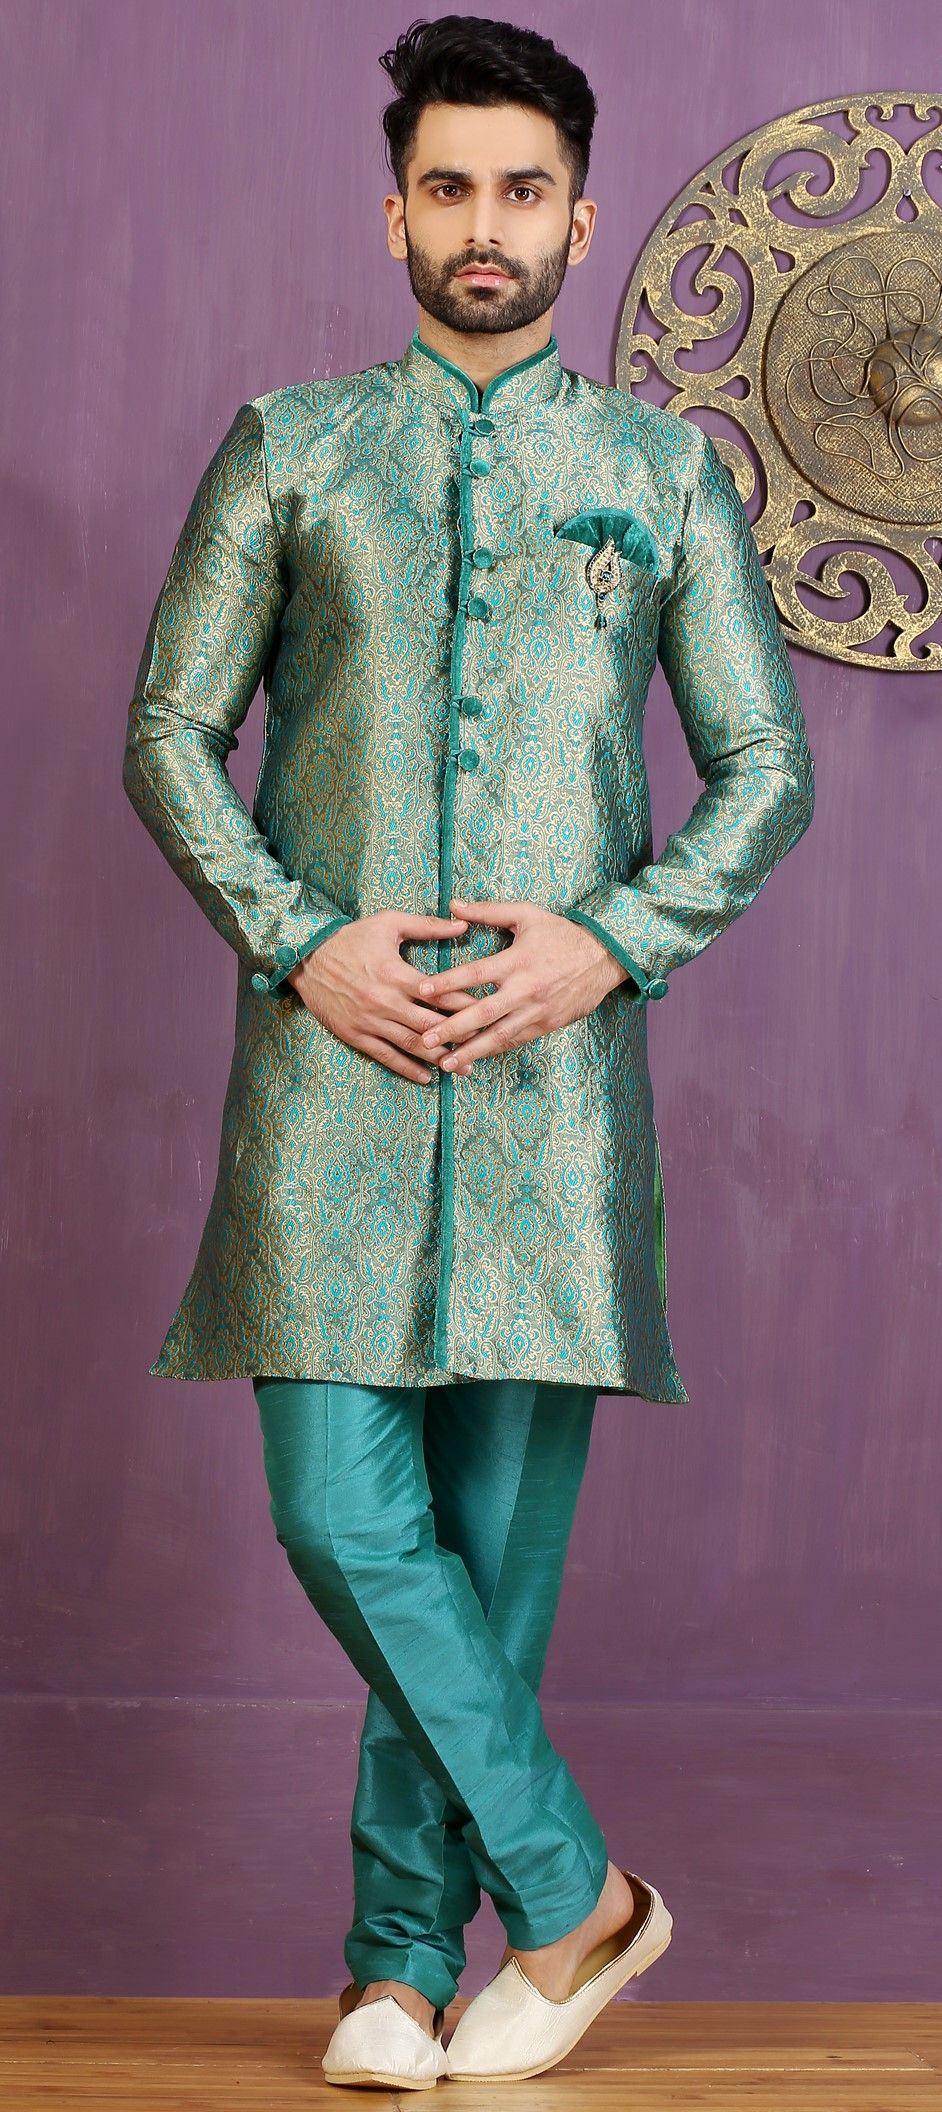 506338: Green color family stitched IndoWestern Dress . | My ...